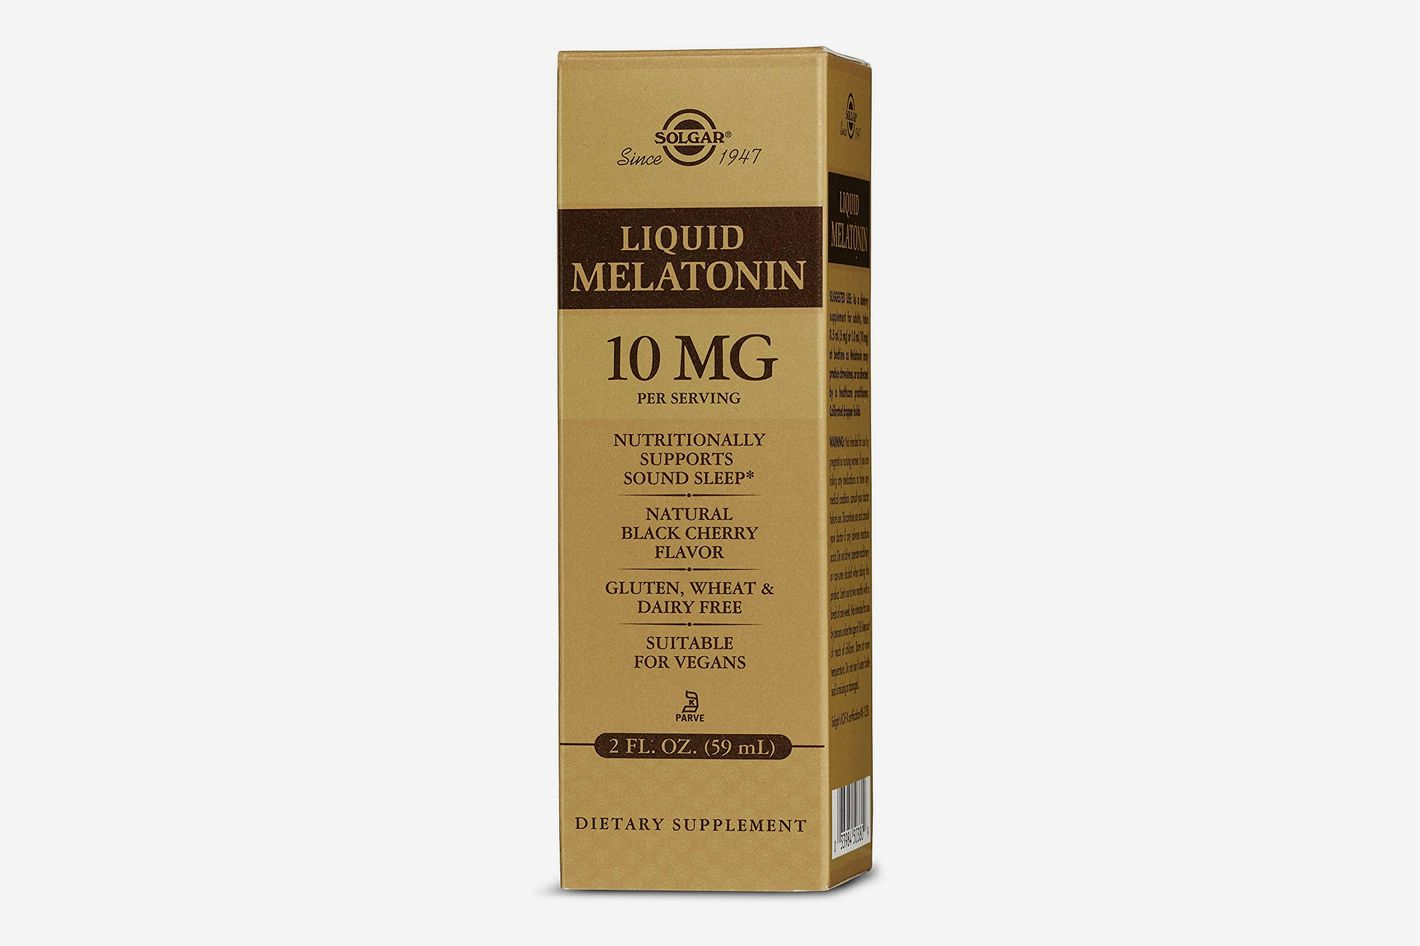 Solgar Liquid Melatonin, 10 mg